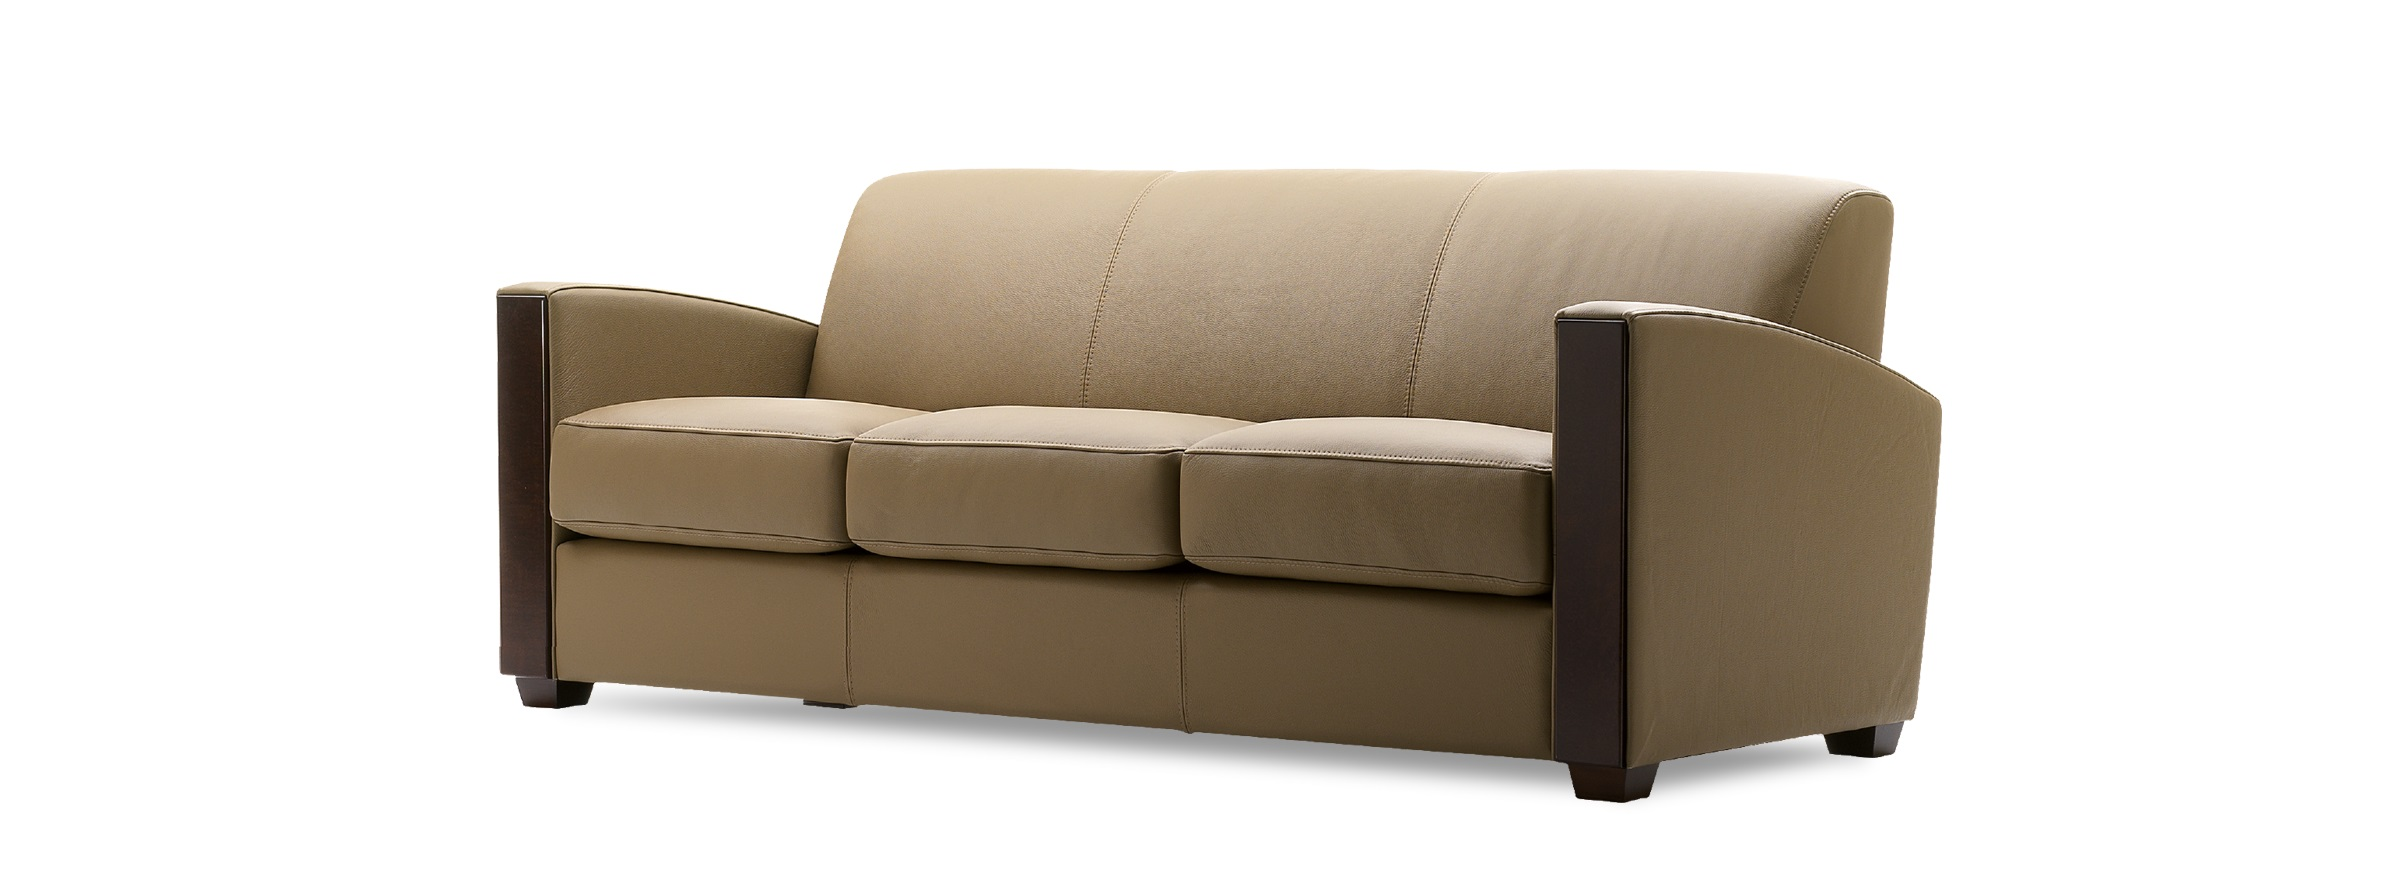 Canapé Ikea Friheten Avis Sofa Convertible France Baci Living Room